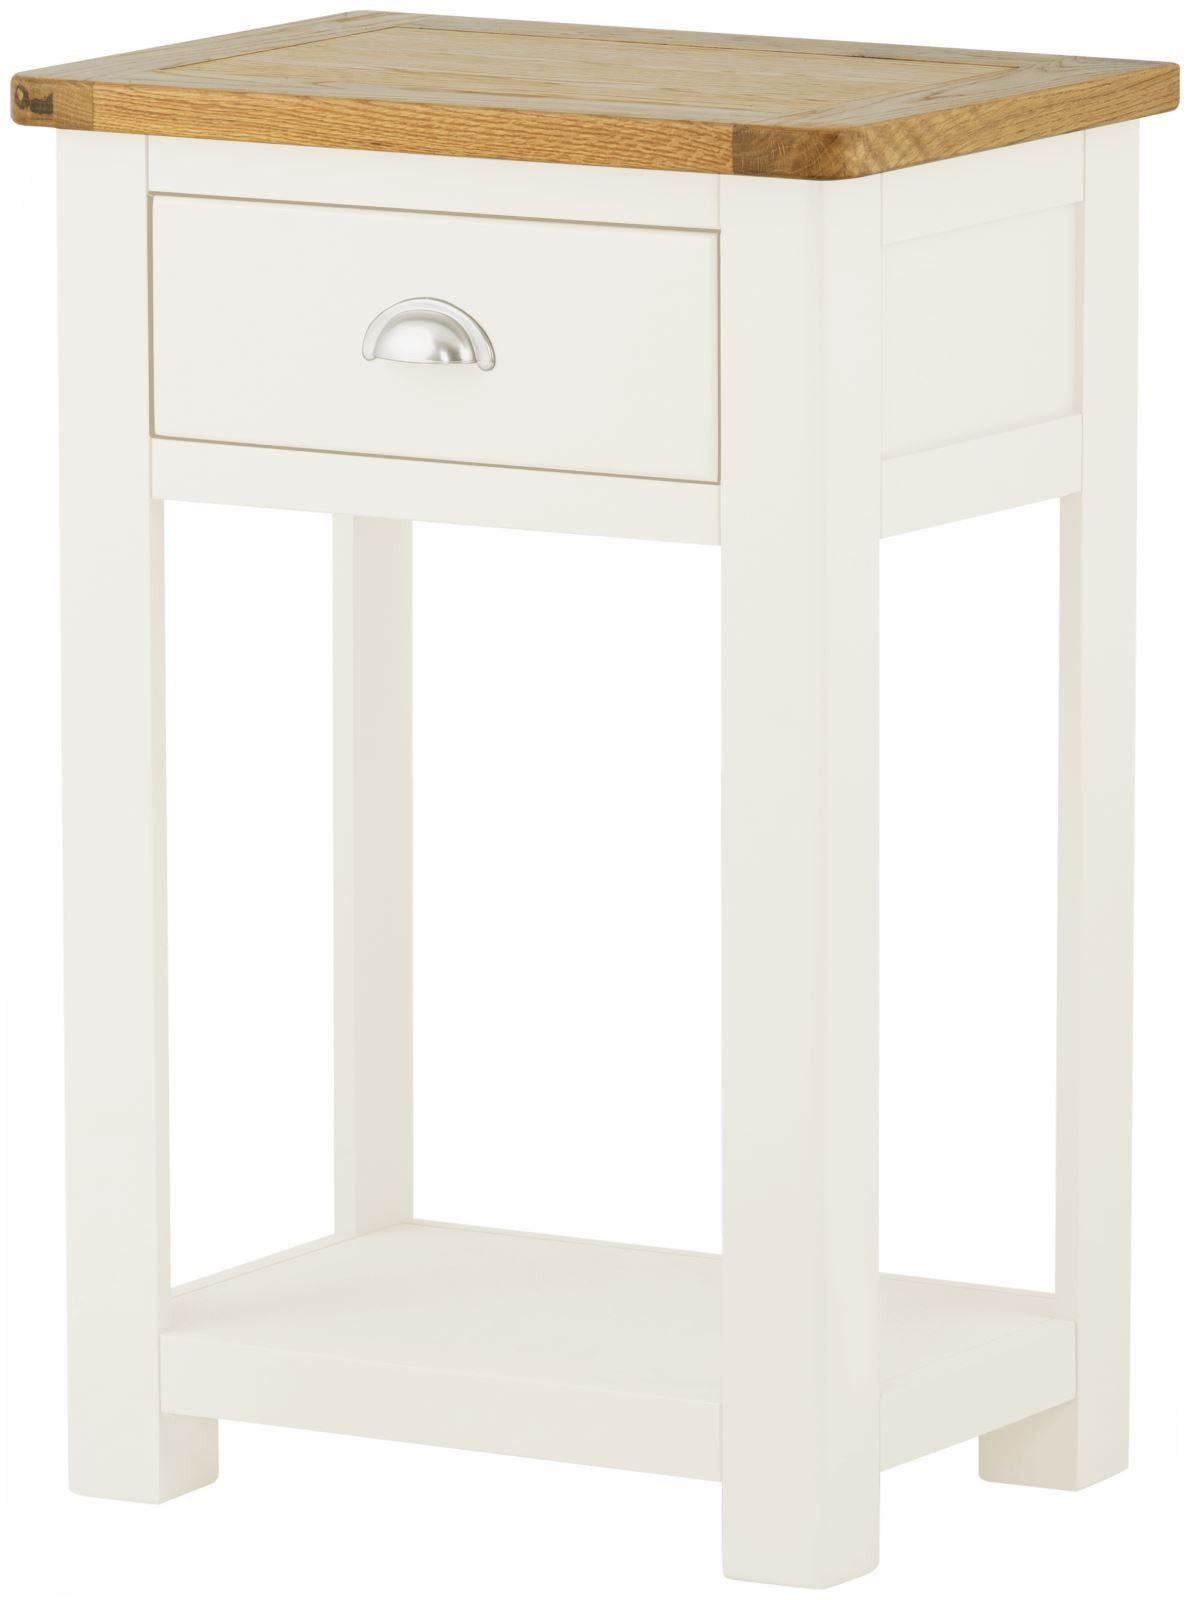 Stratton White Hall Table Height 750 Width 500 Depth 350